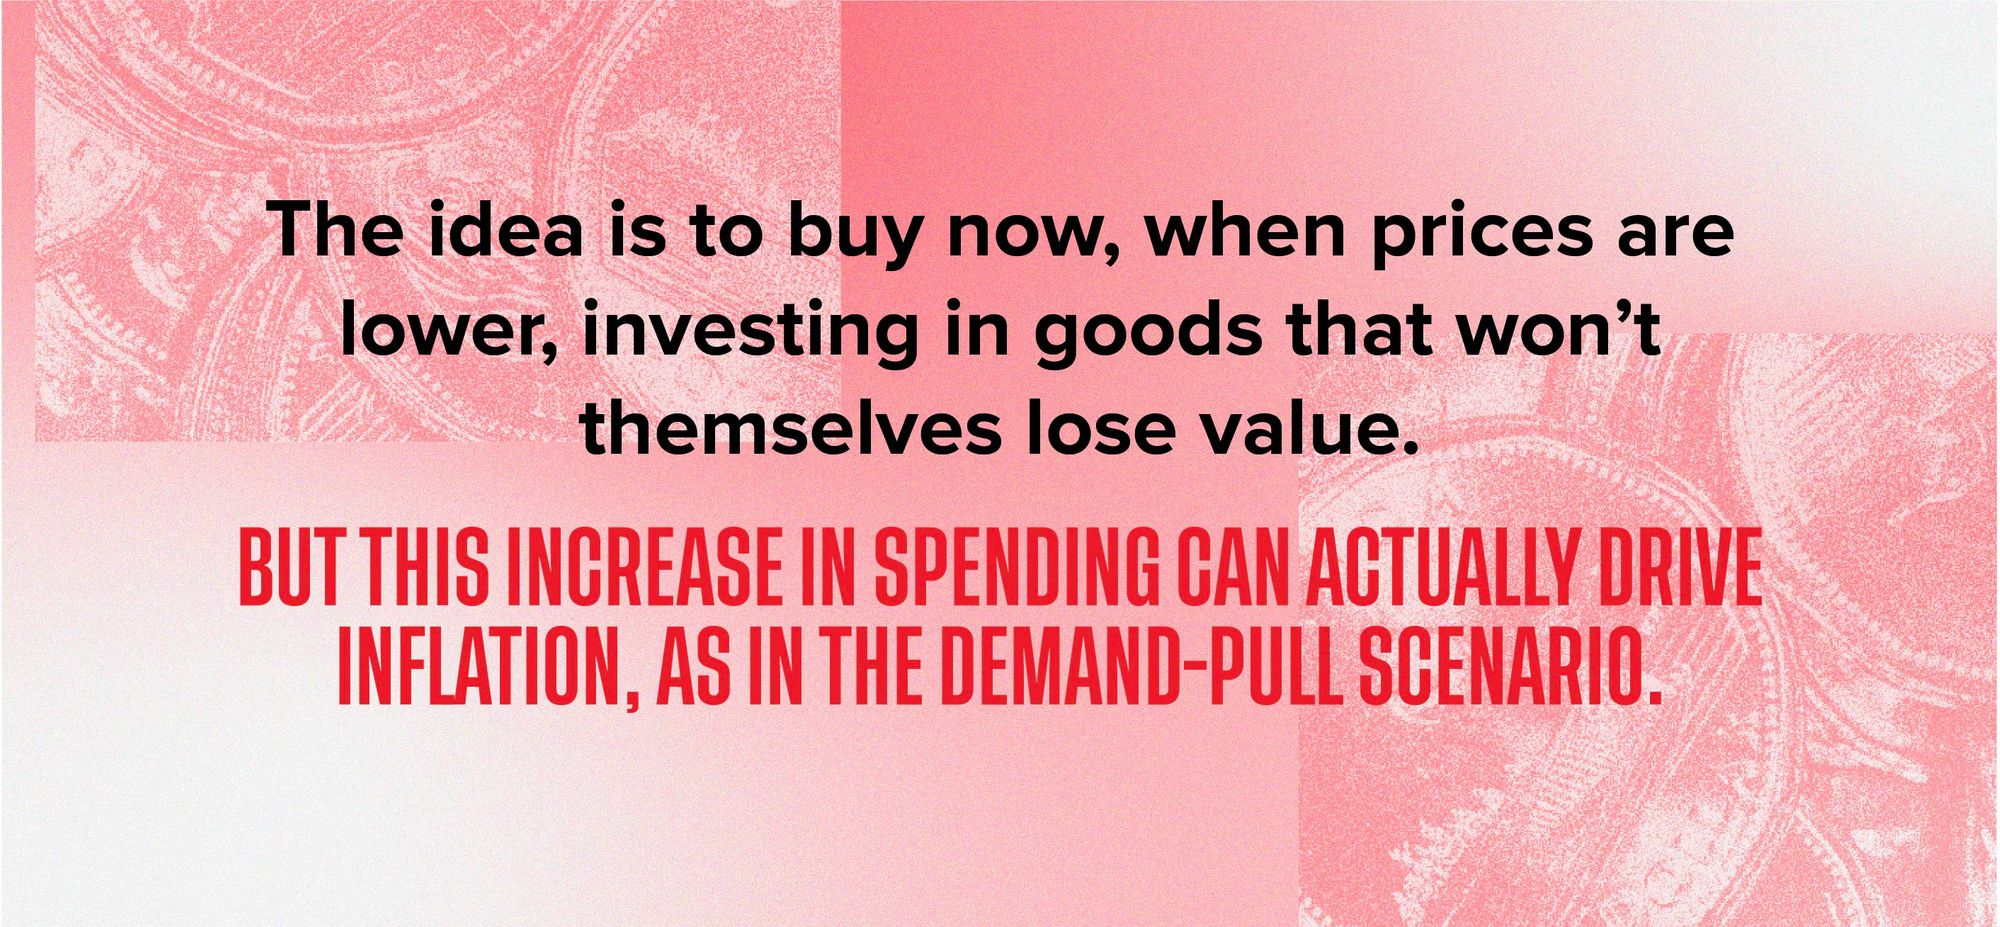 Graphic with text: The idea is to buy now, when prices are lower, investing in goods that won't themselves lose value. But this increase in spending can actually drive inflation, as in the demand-pull scenario.